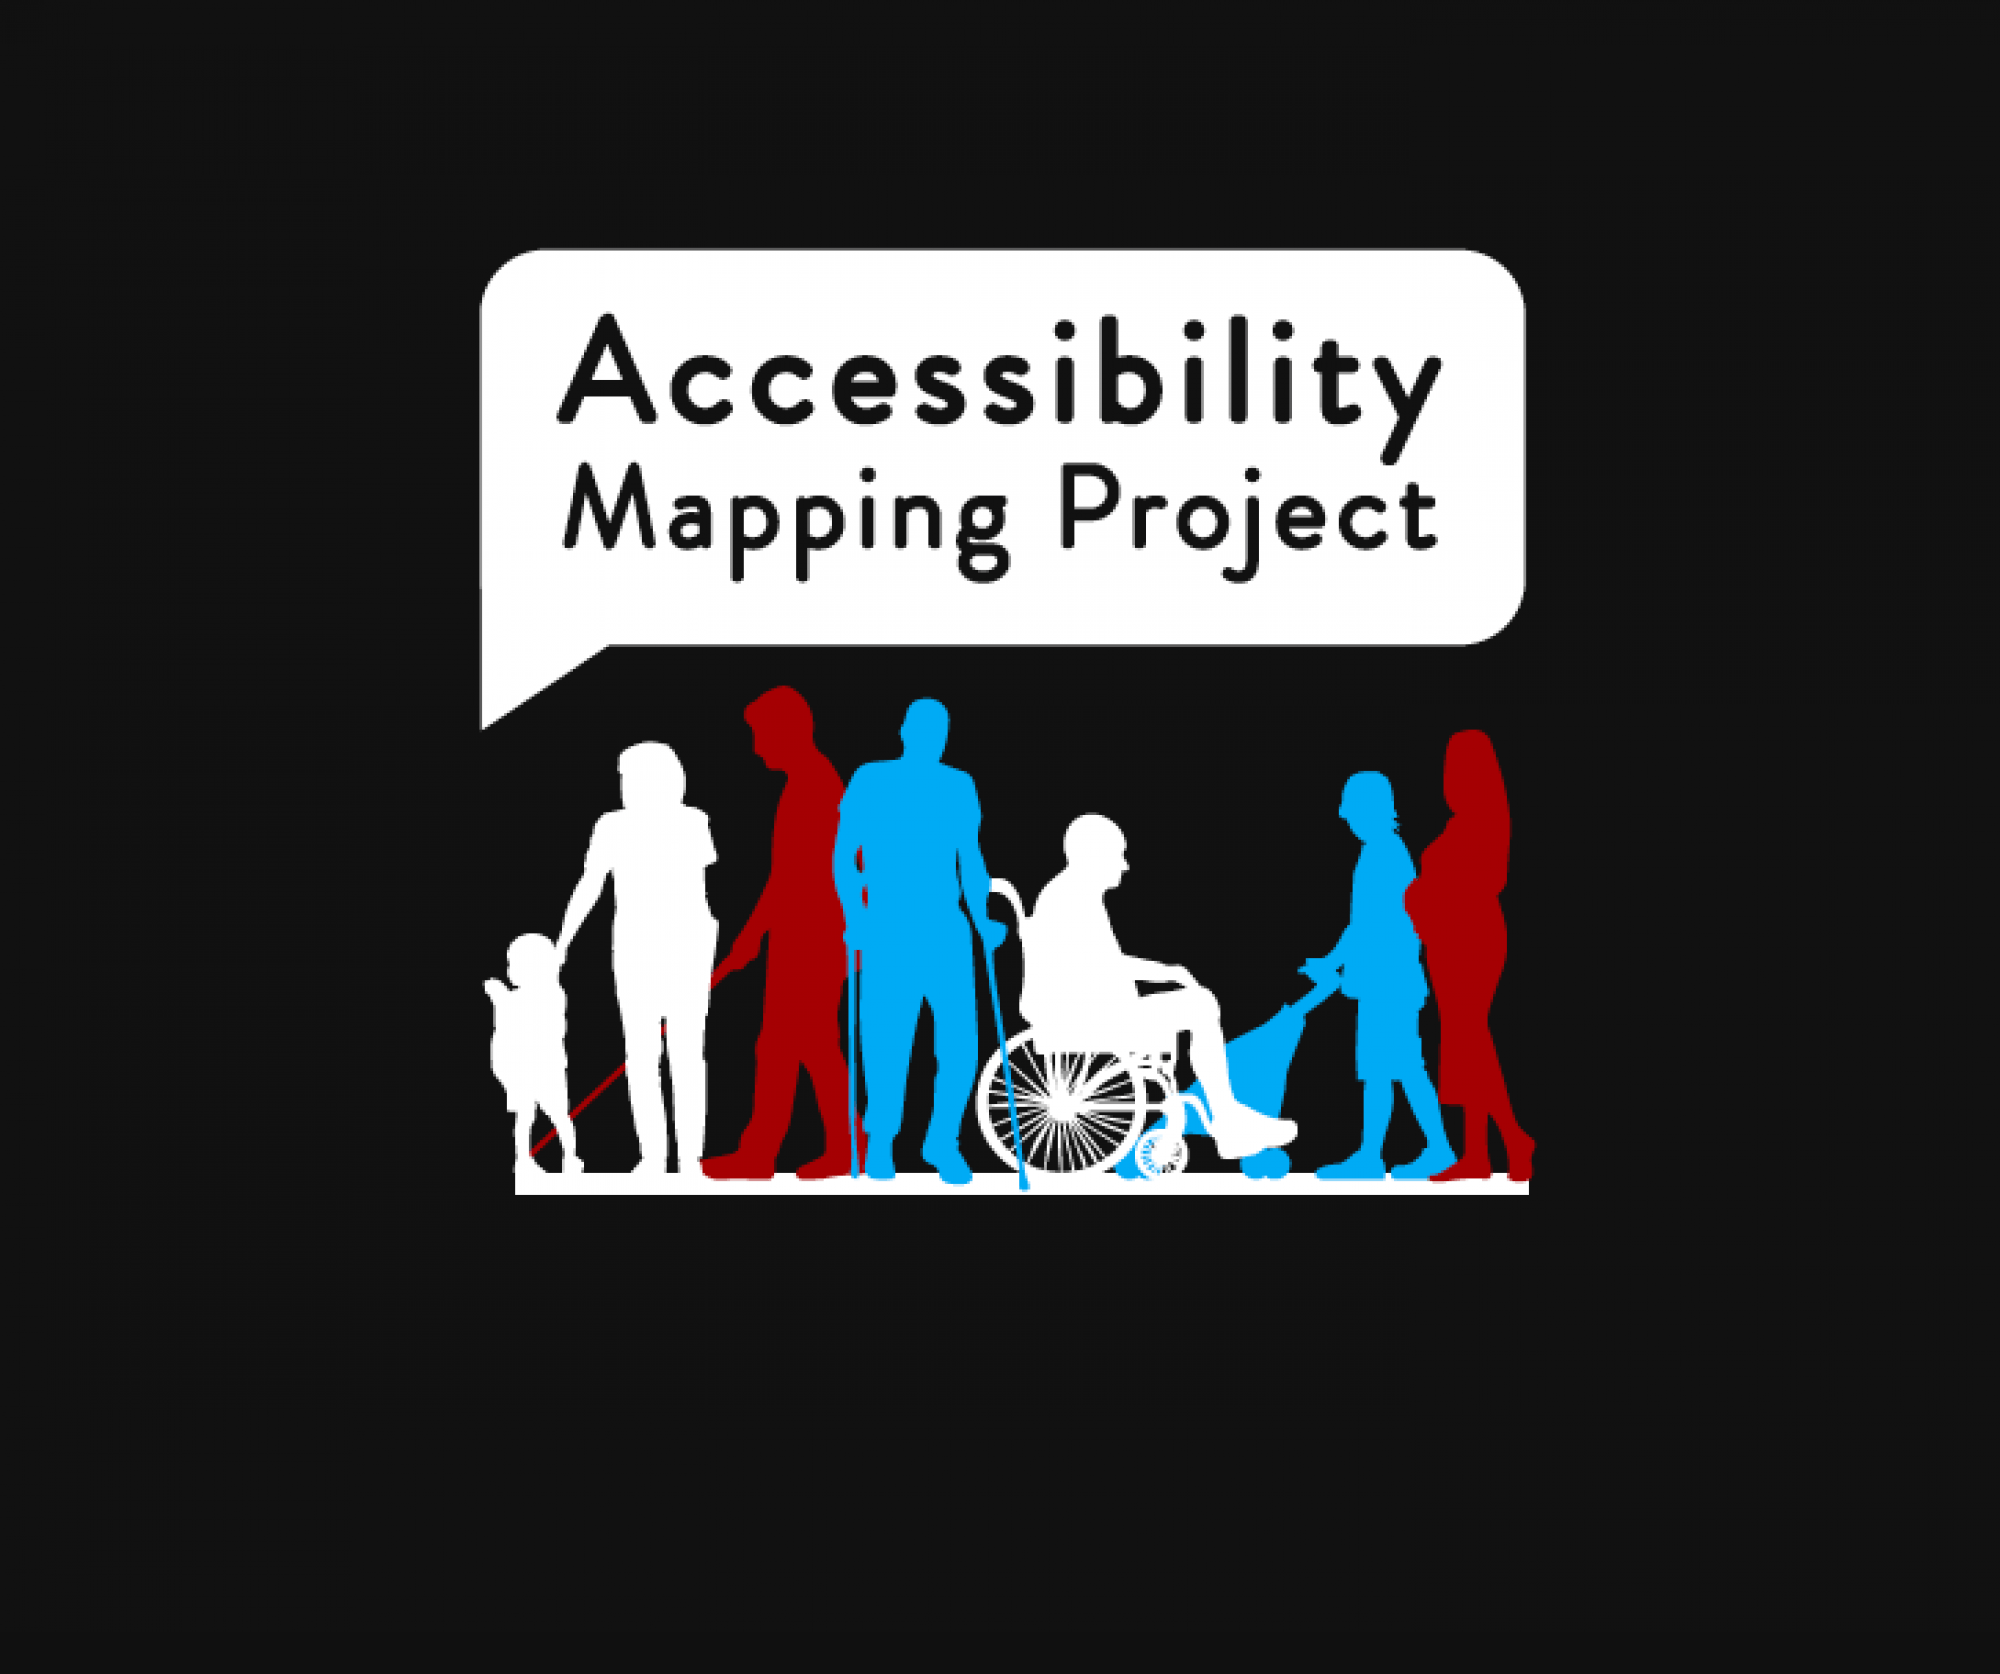 Accessibility Mapping Project (AMP)